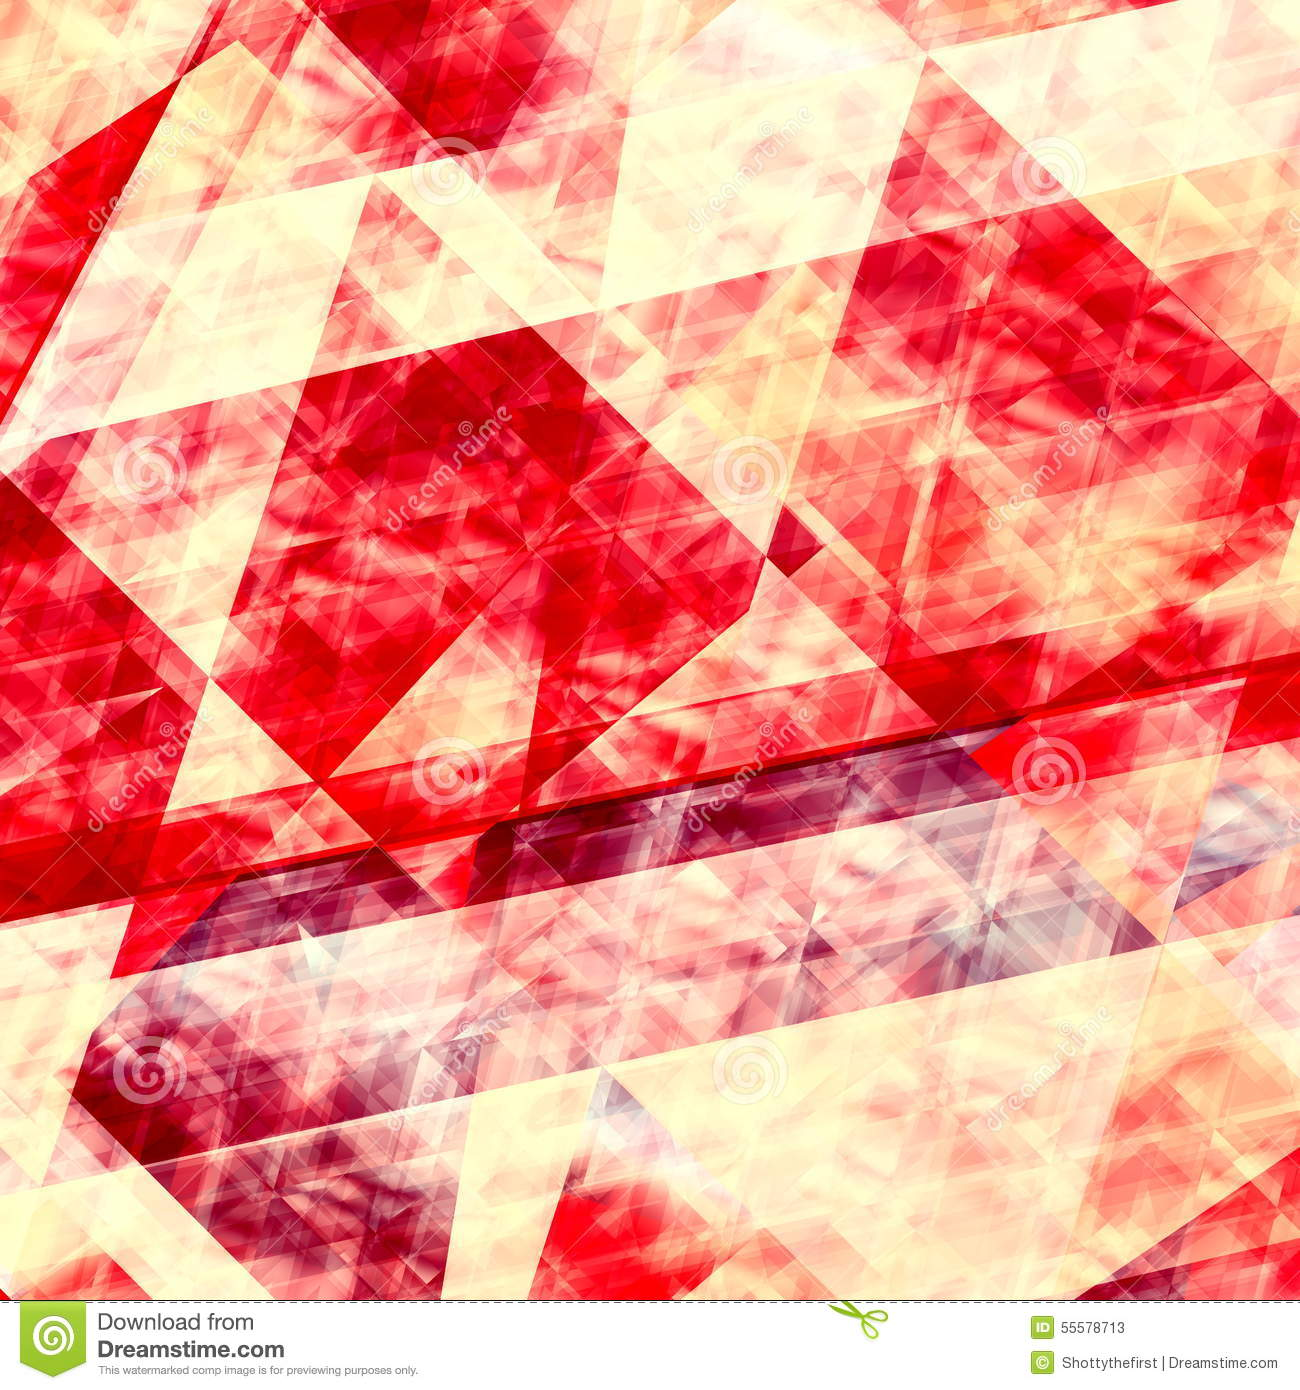 Beauty Wallpapers Paper: Abstract Red Lines Background. Geometric Element Design